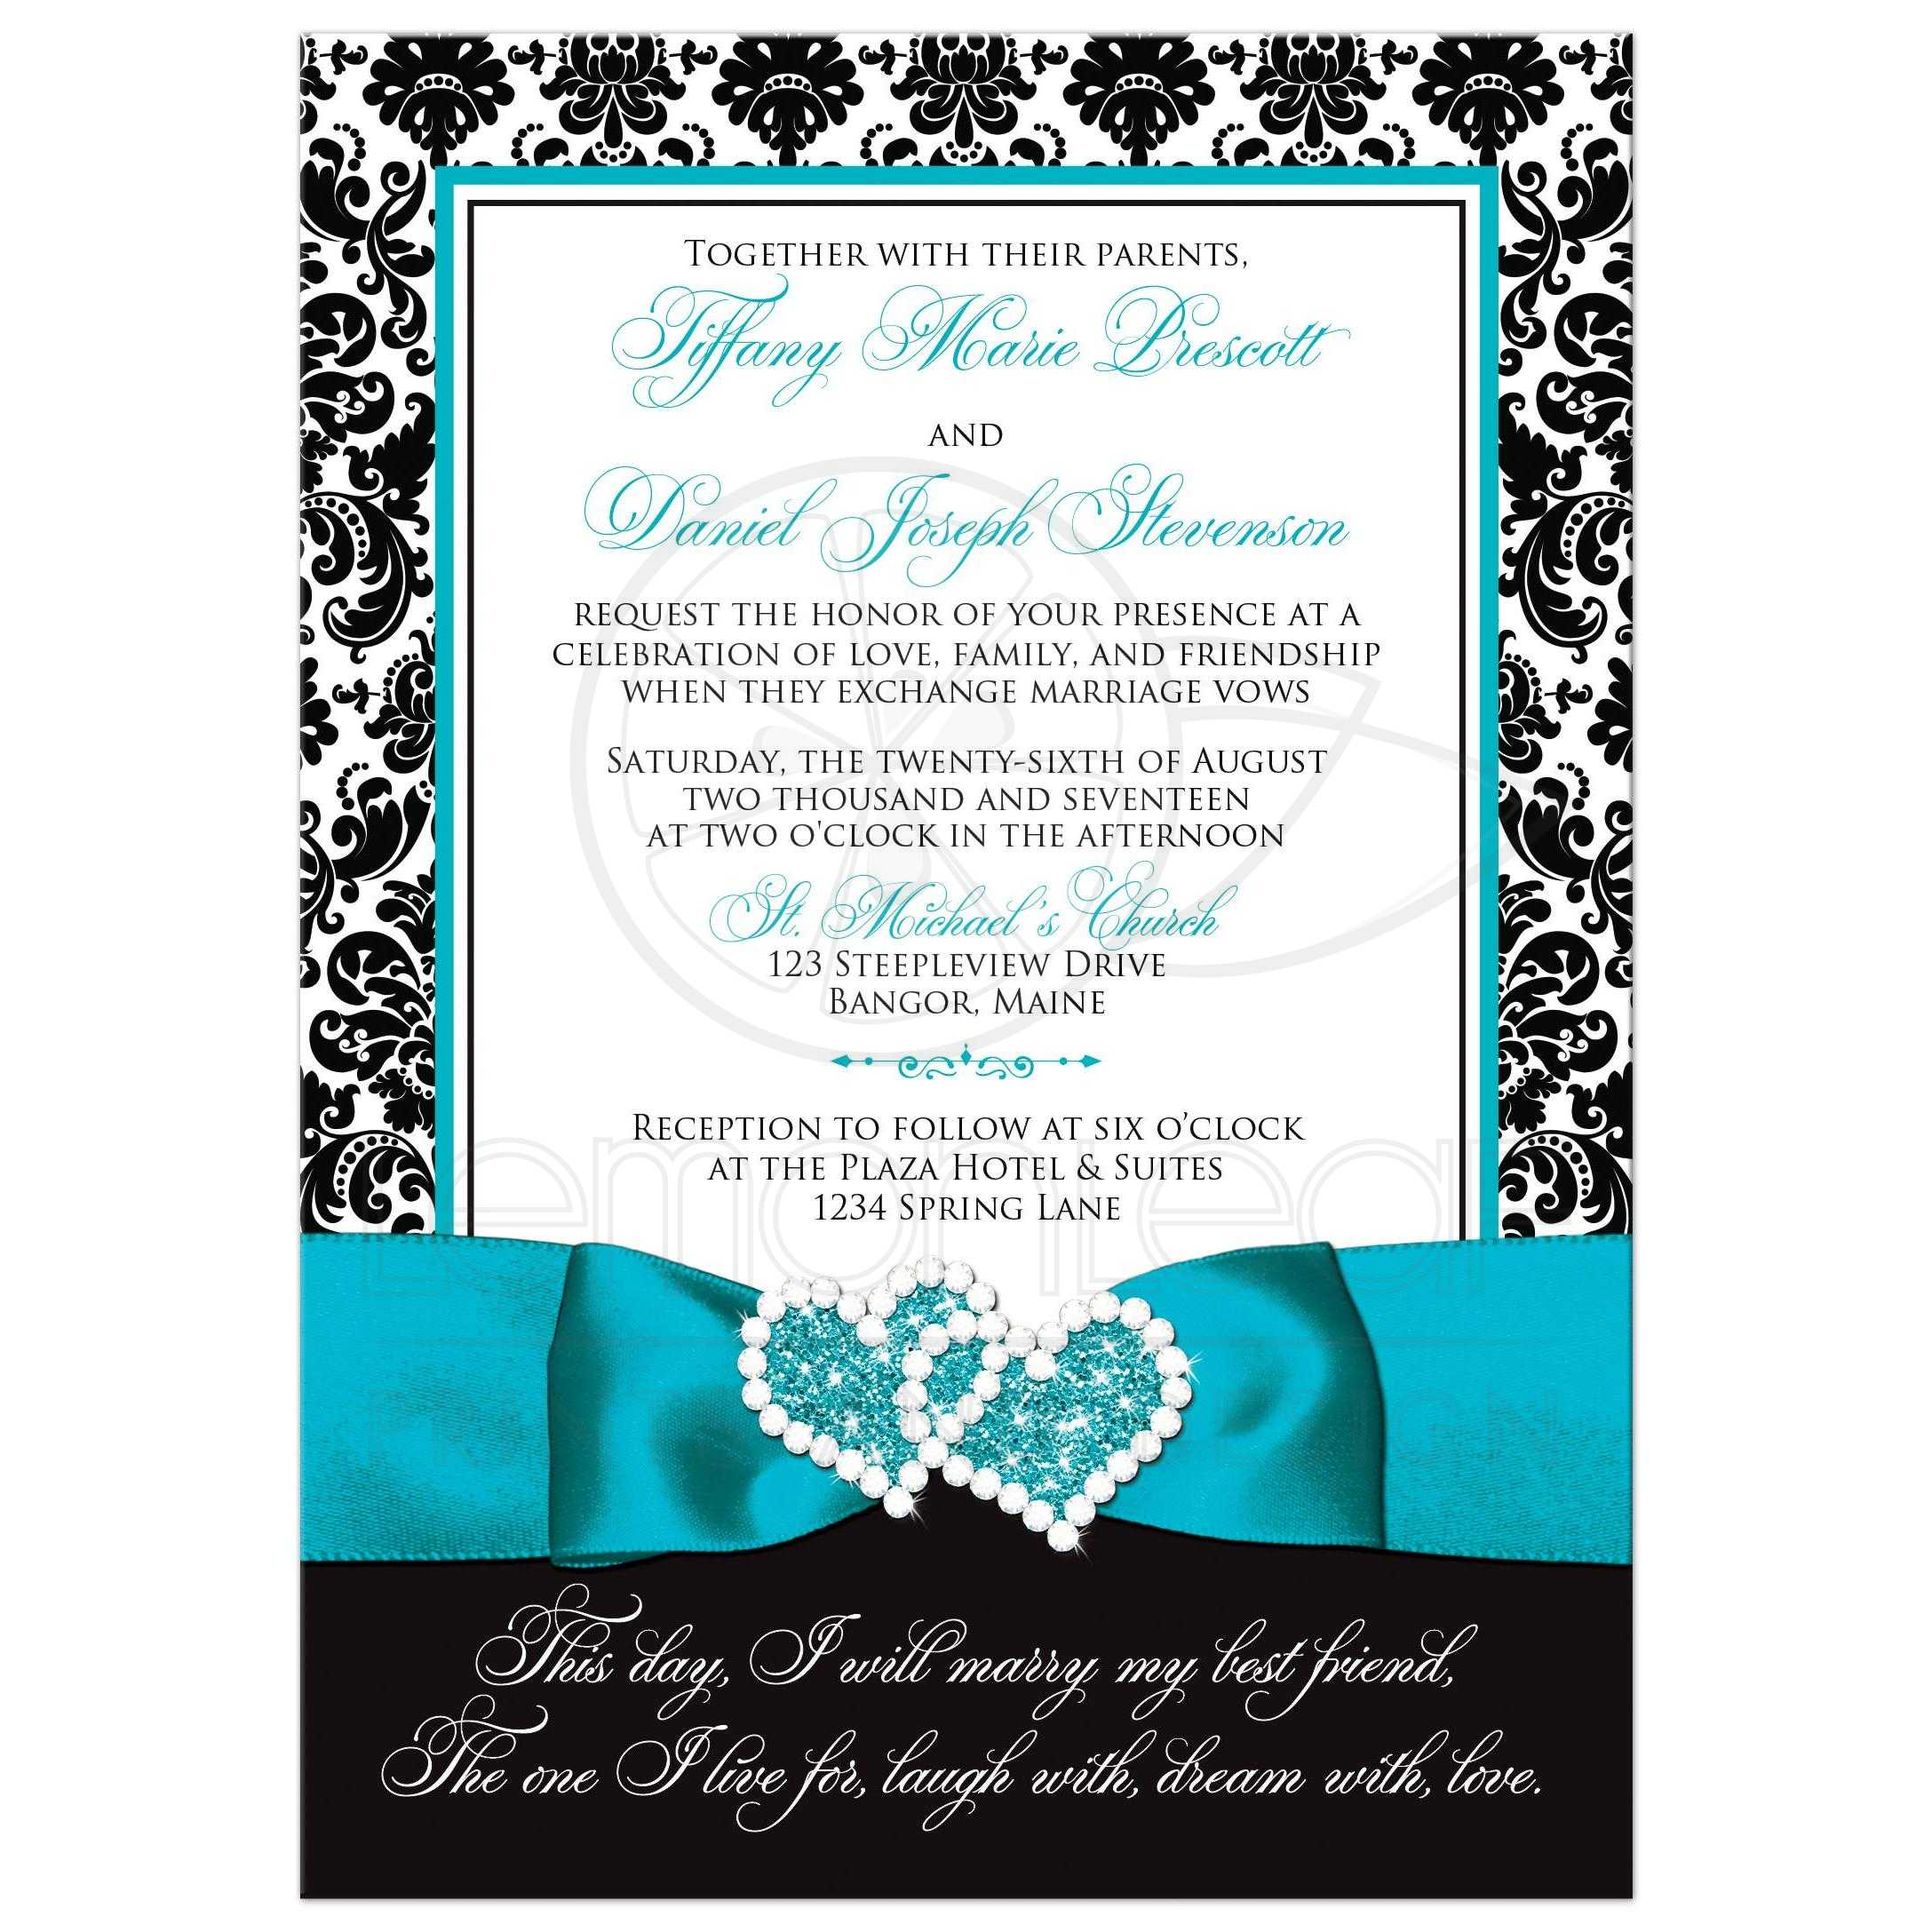 Wedding Invitation Photo Optional Black And White Damask Printed Turquoise Ribbon Double Hearts